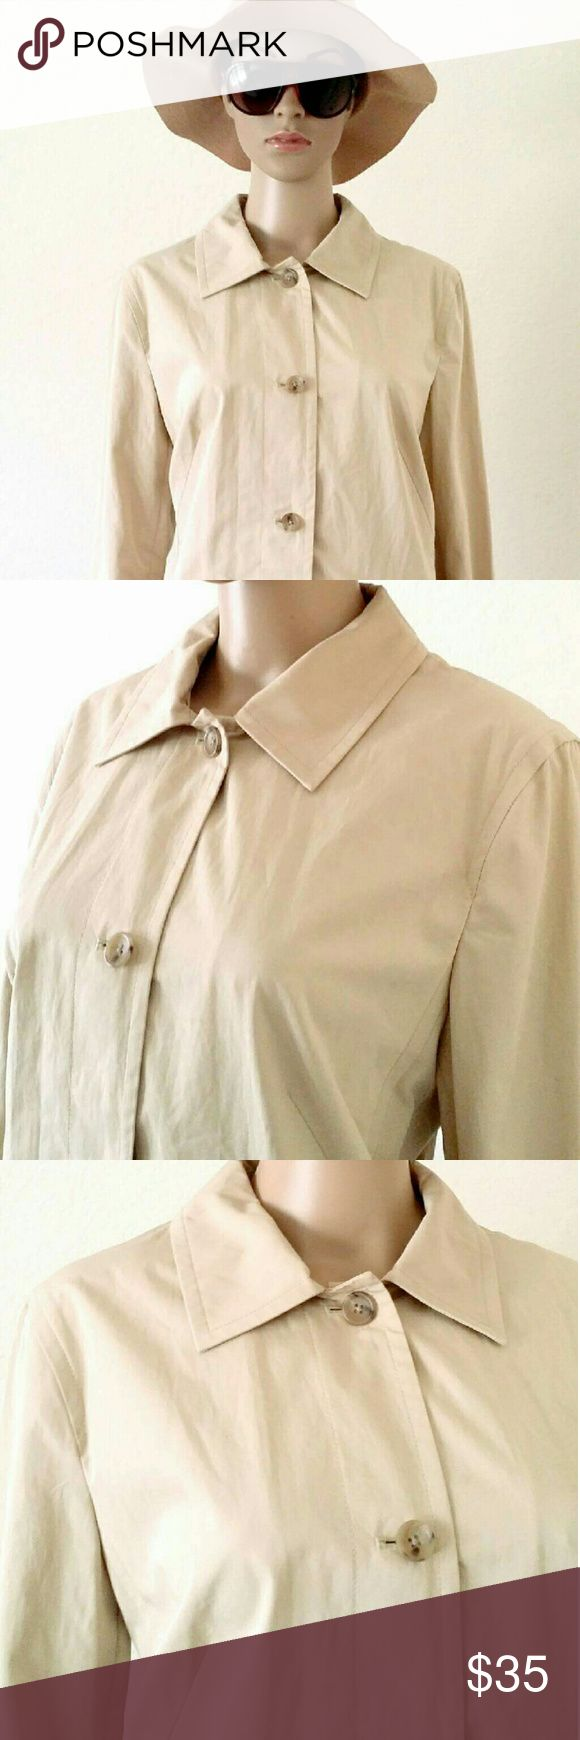 Banana Republic Womens Beige Button Trench Coat Size: L LARGE 100% Cotton In Very good condition!! Very adorable!! A great gift!! Fast shipping!! Banana Republic Jackets & Coats Trench Coats